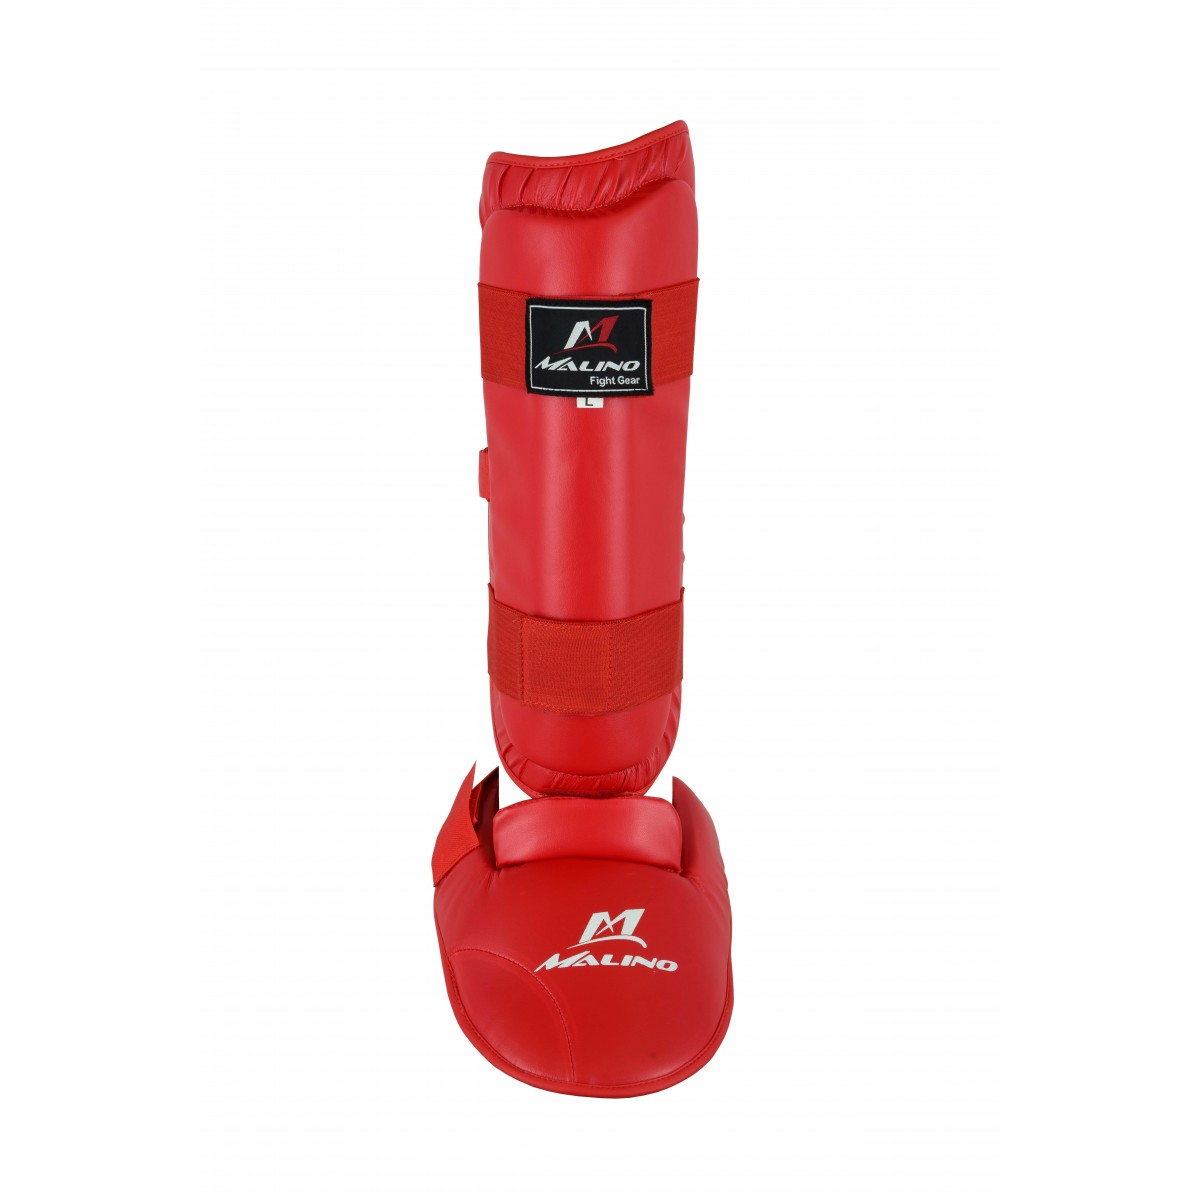 Malino Red PU Shin Pads with Removable Instep Foot